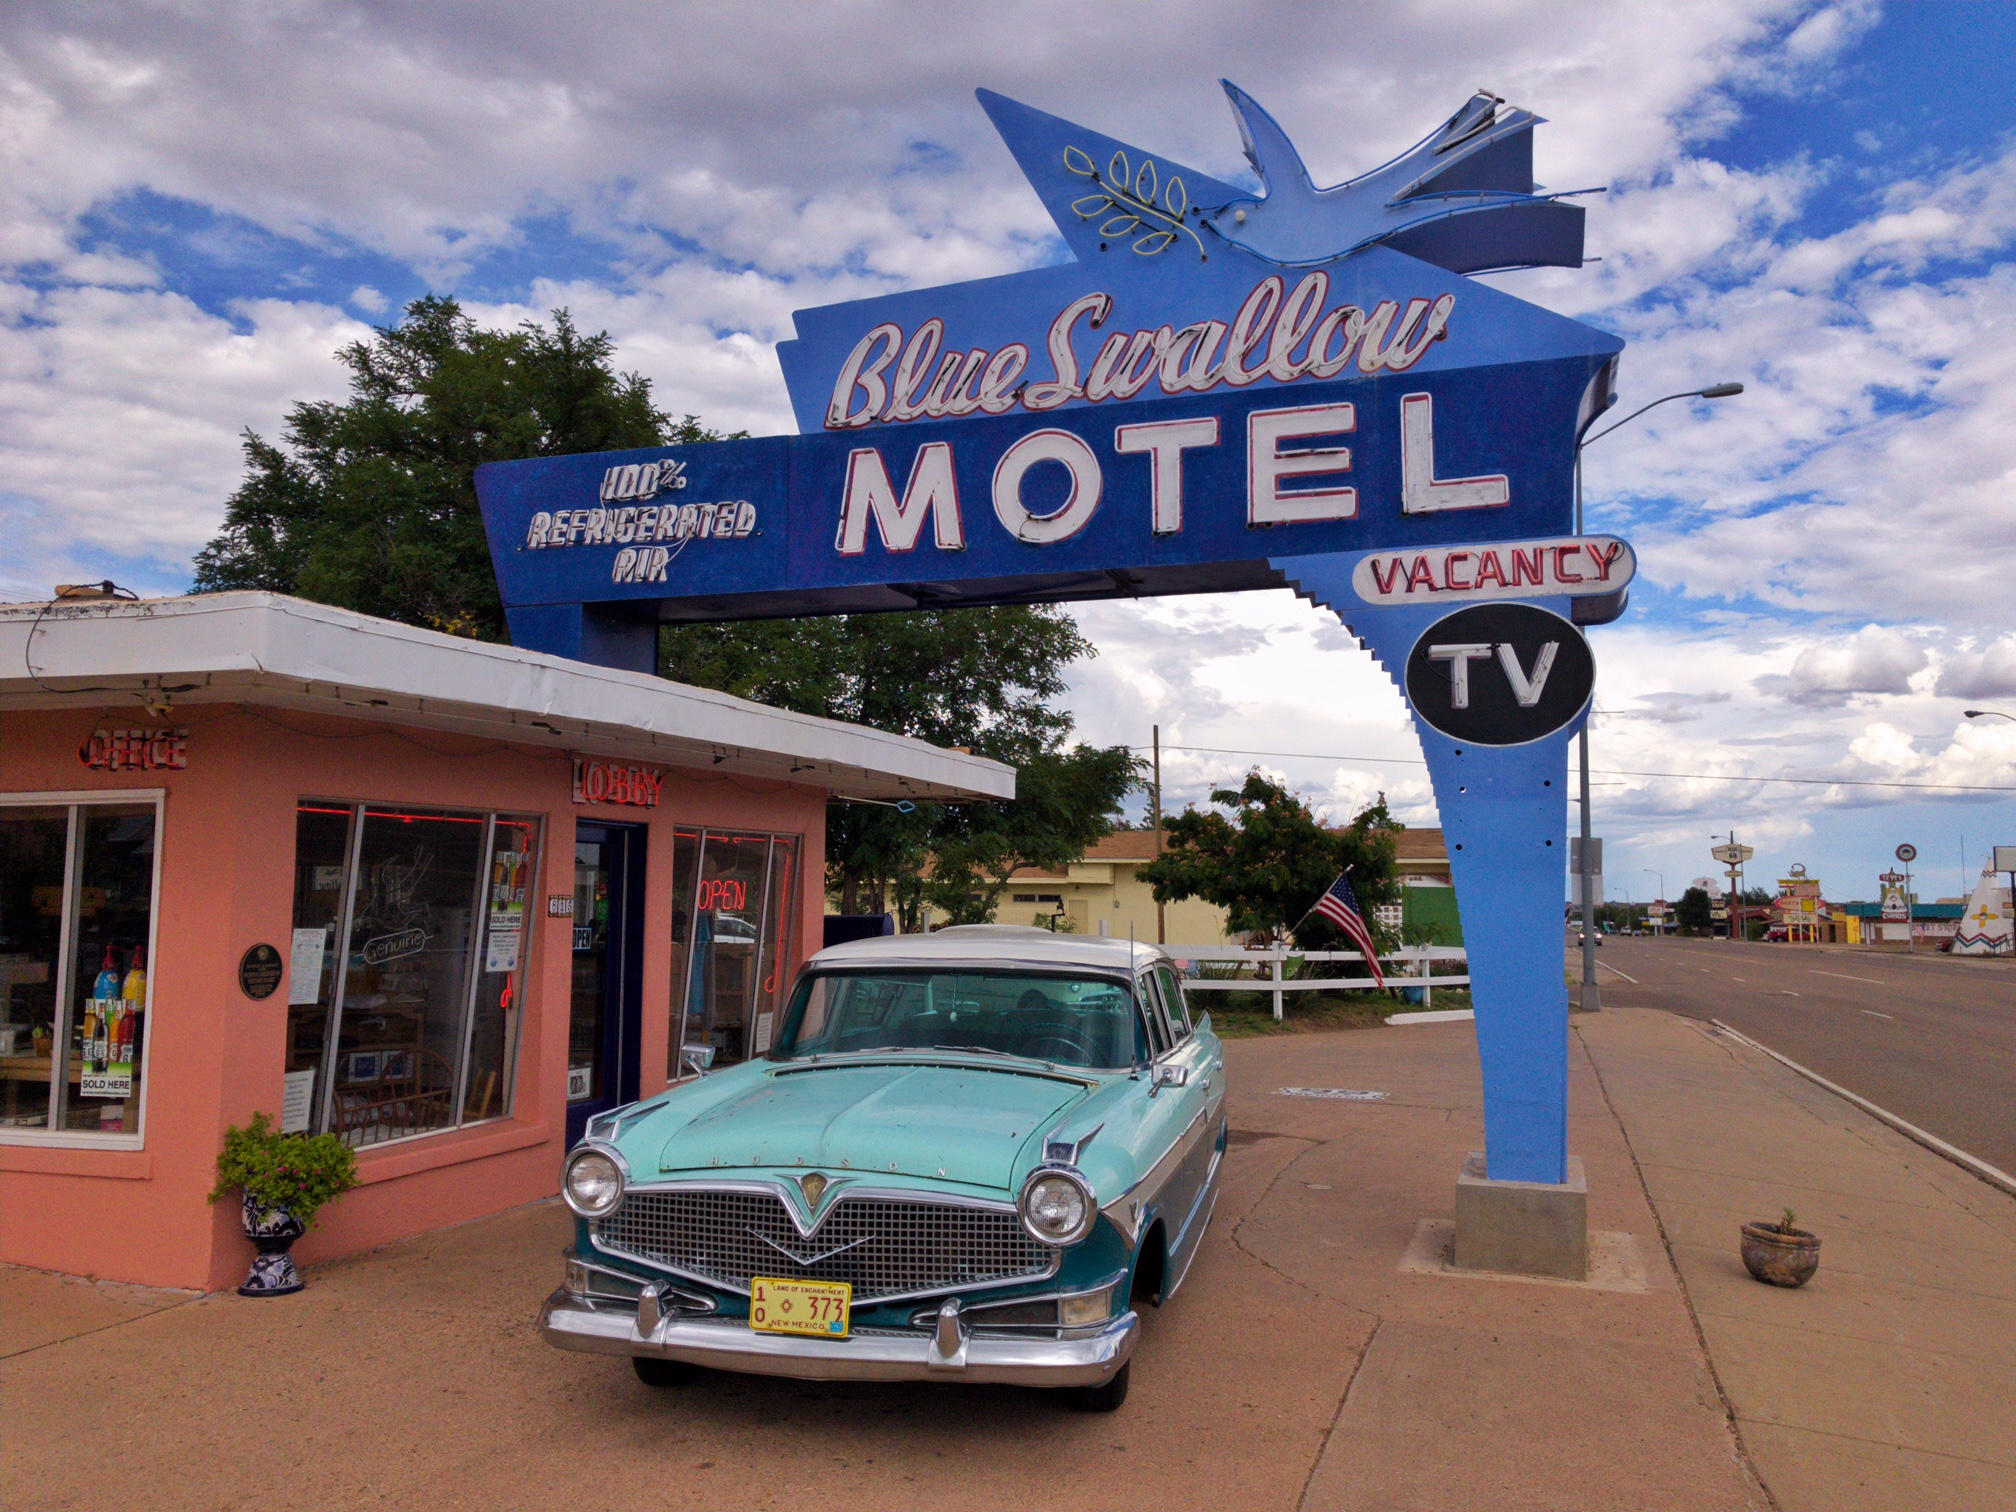 Blue Swallow Motel - 815 East Route 66 Boulevard, Tucumcari, New Mexico U.S.A. - August 20, 2017